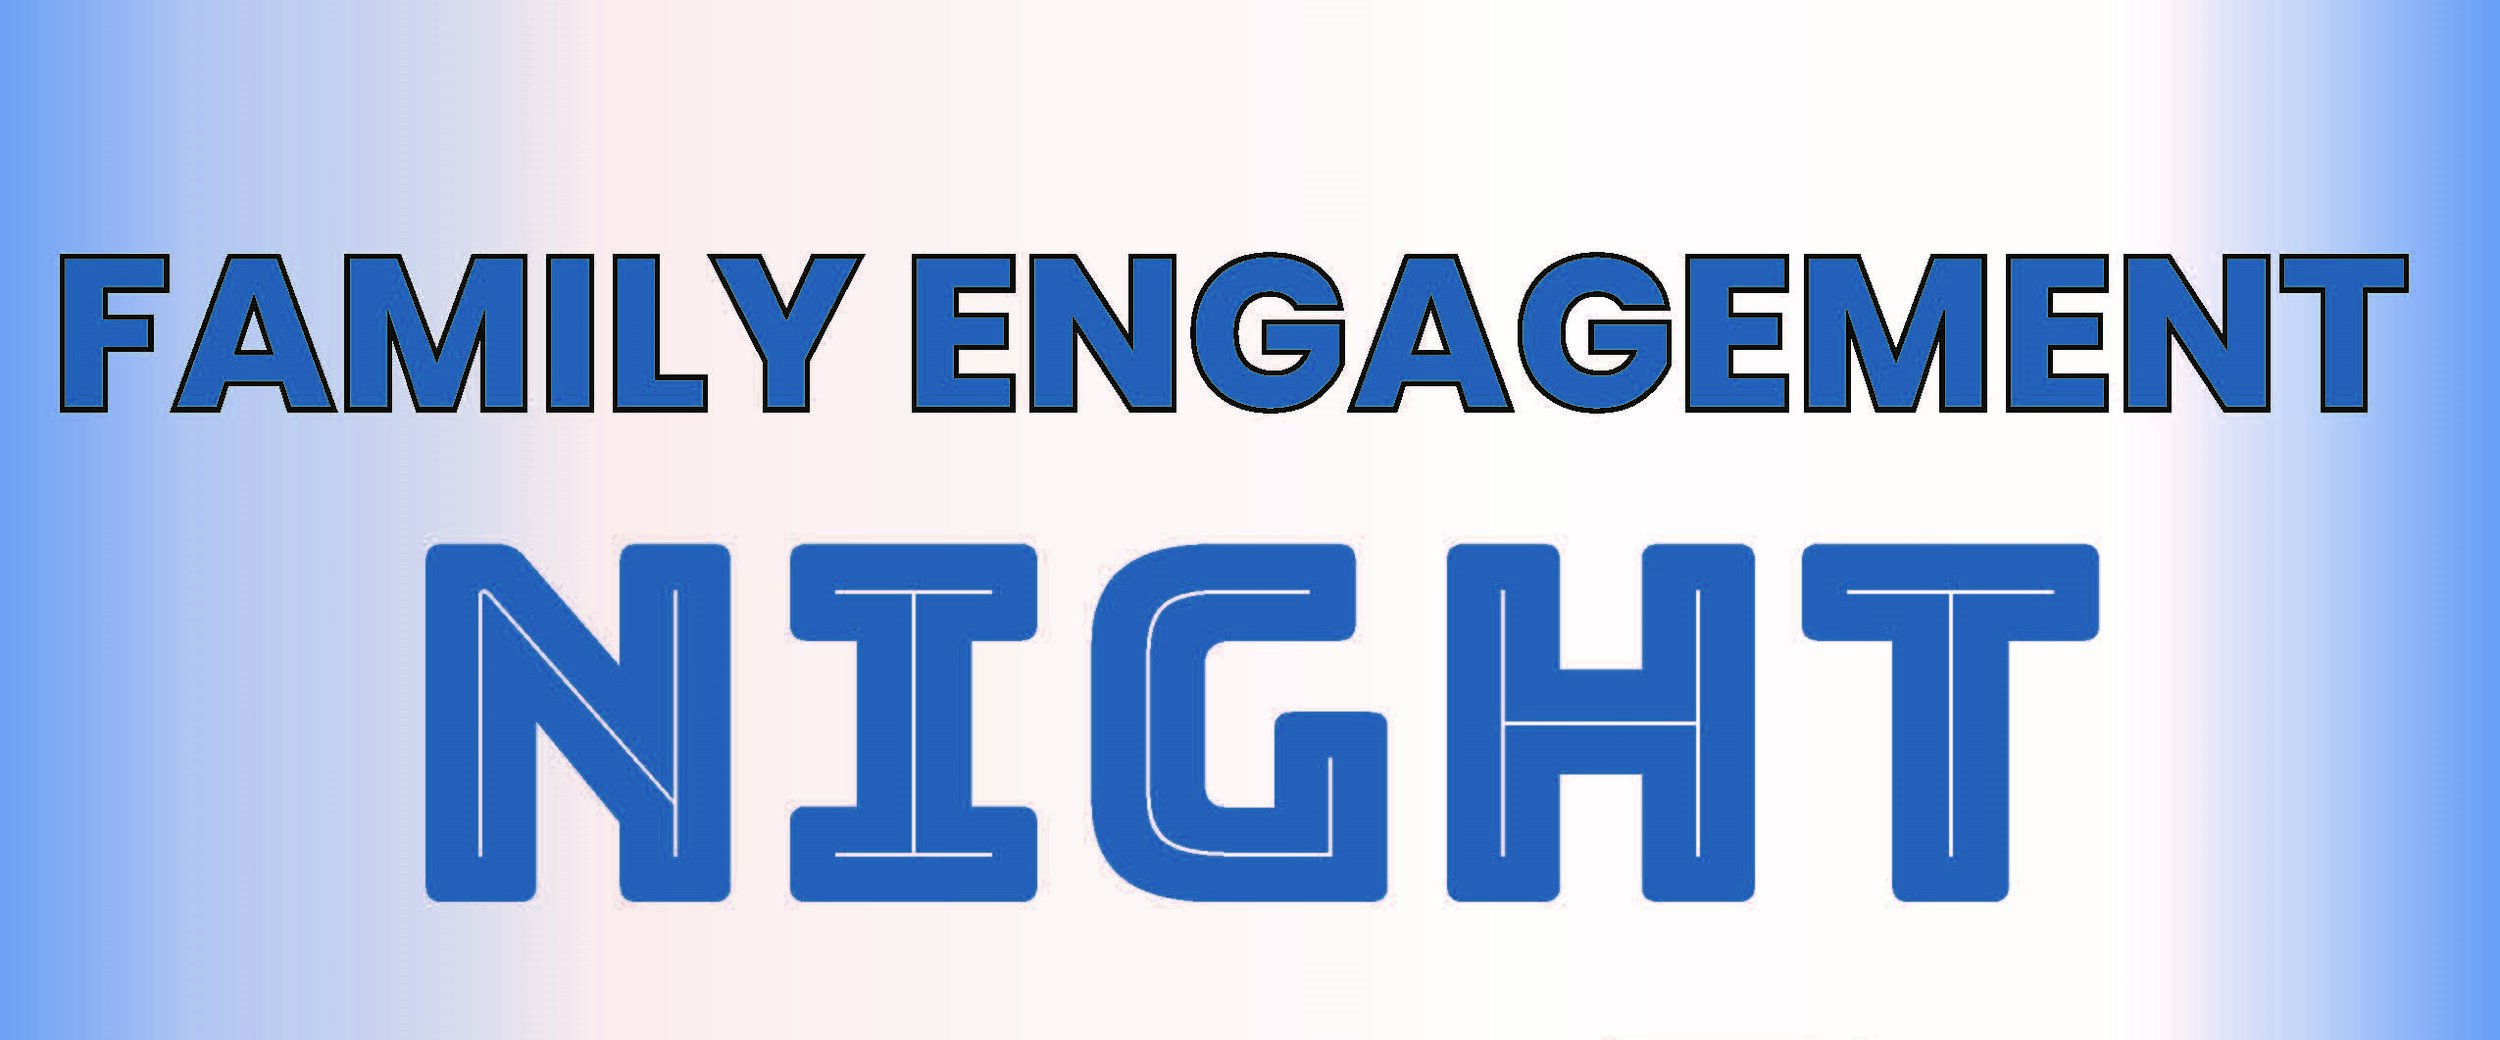 CVHS - Family Engagement Night Flyer - PRINThead.jpg